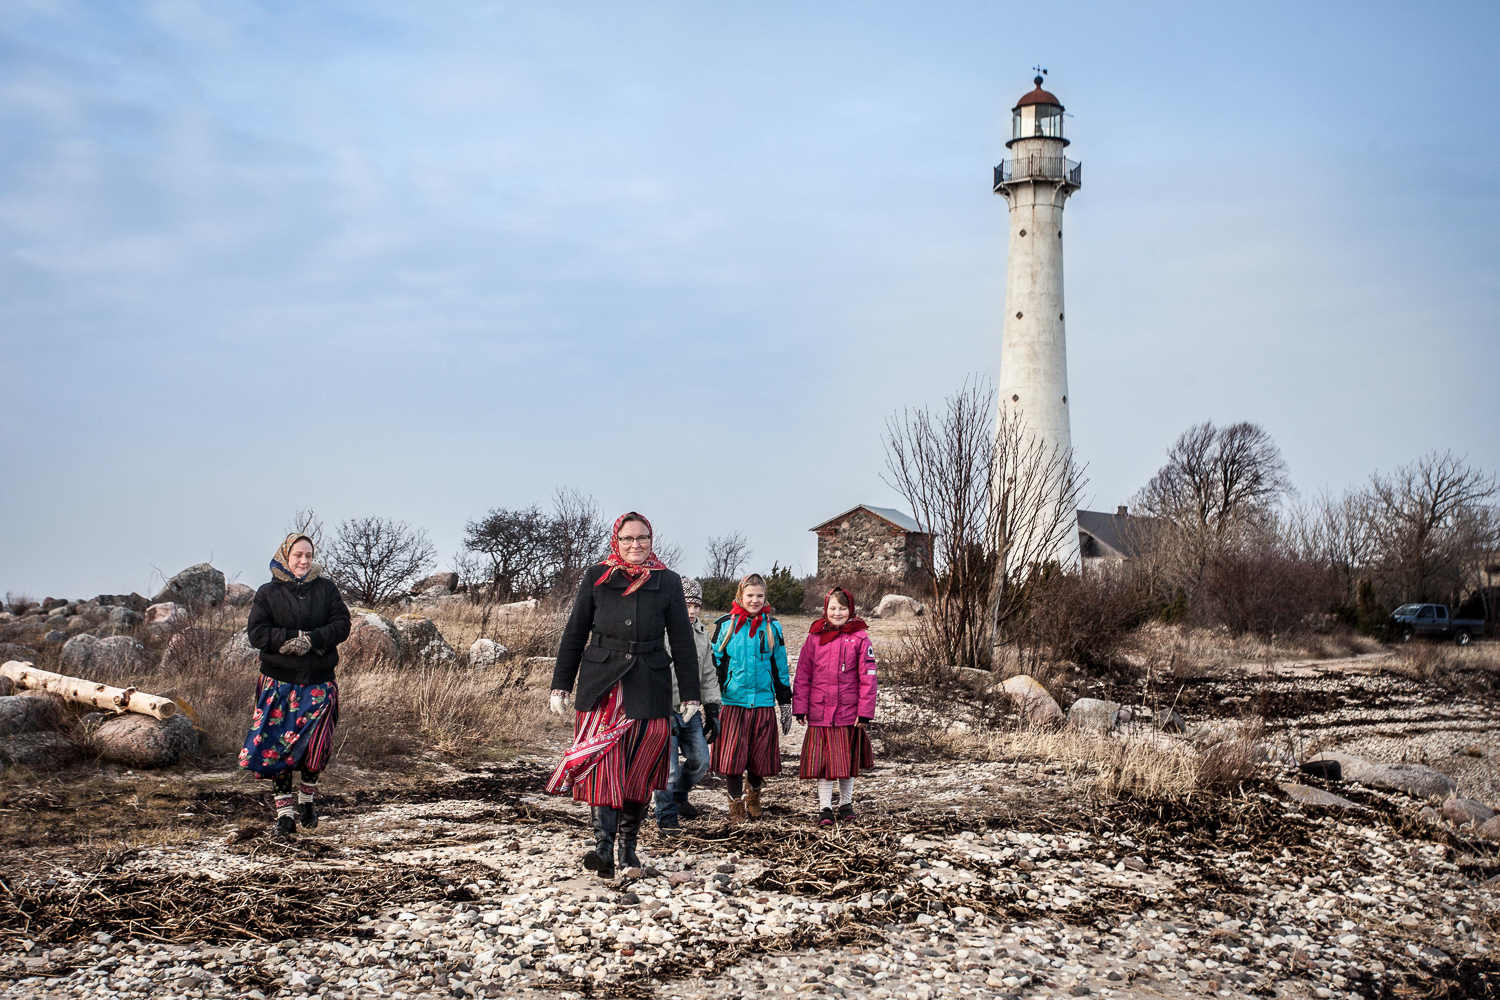 Mare Matas, leader of the island and president of the Kihnu Cultural Space Foundation, walks past a 19th century lighthouse. [Sebastien Leban/Al Jazeera]